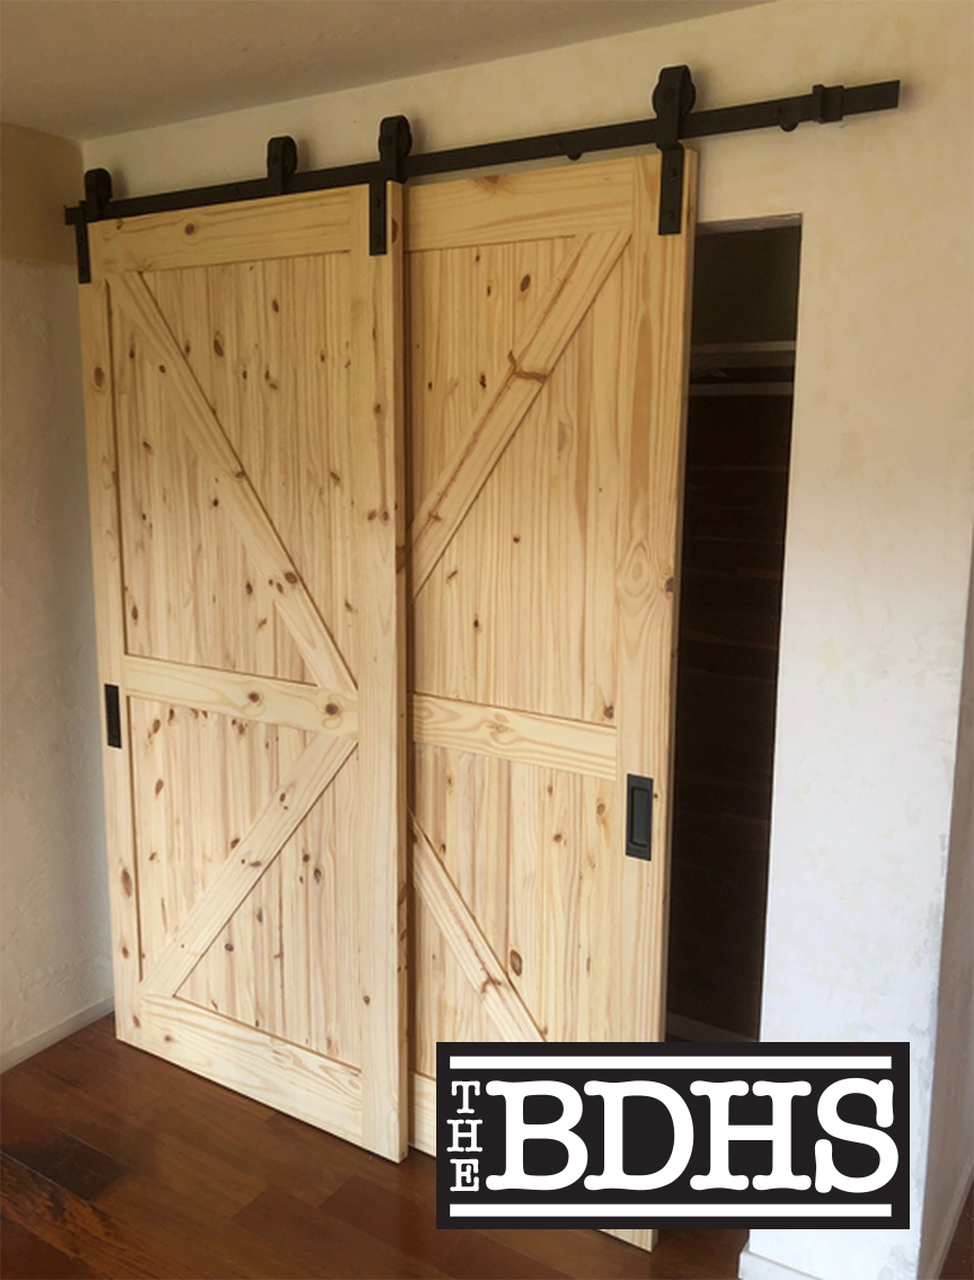 Single Track Bypass C Double Door Sliding Barn Door Hardware Kit With 78 Track Fast Bypass Barn Door Hardware Barn Door Designs Bypass Barn Door